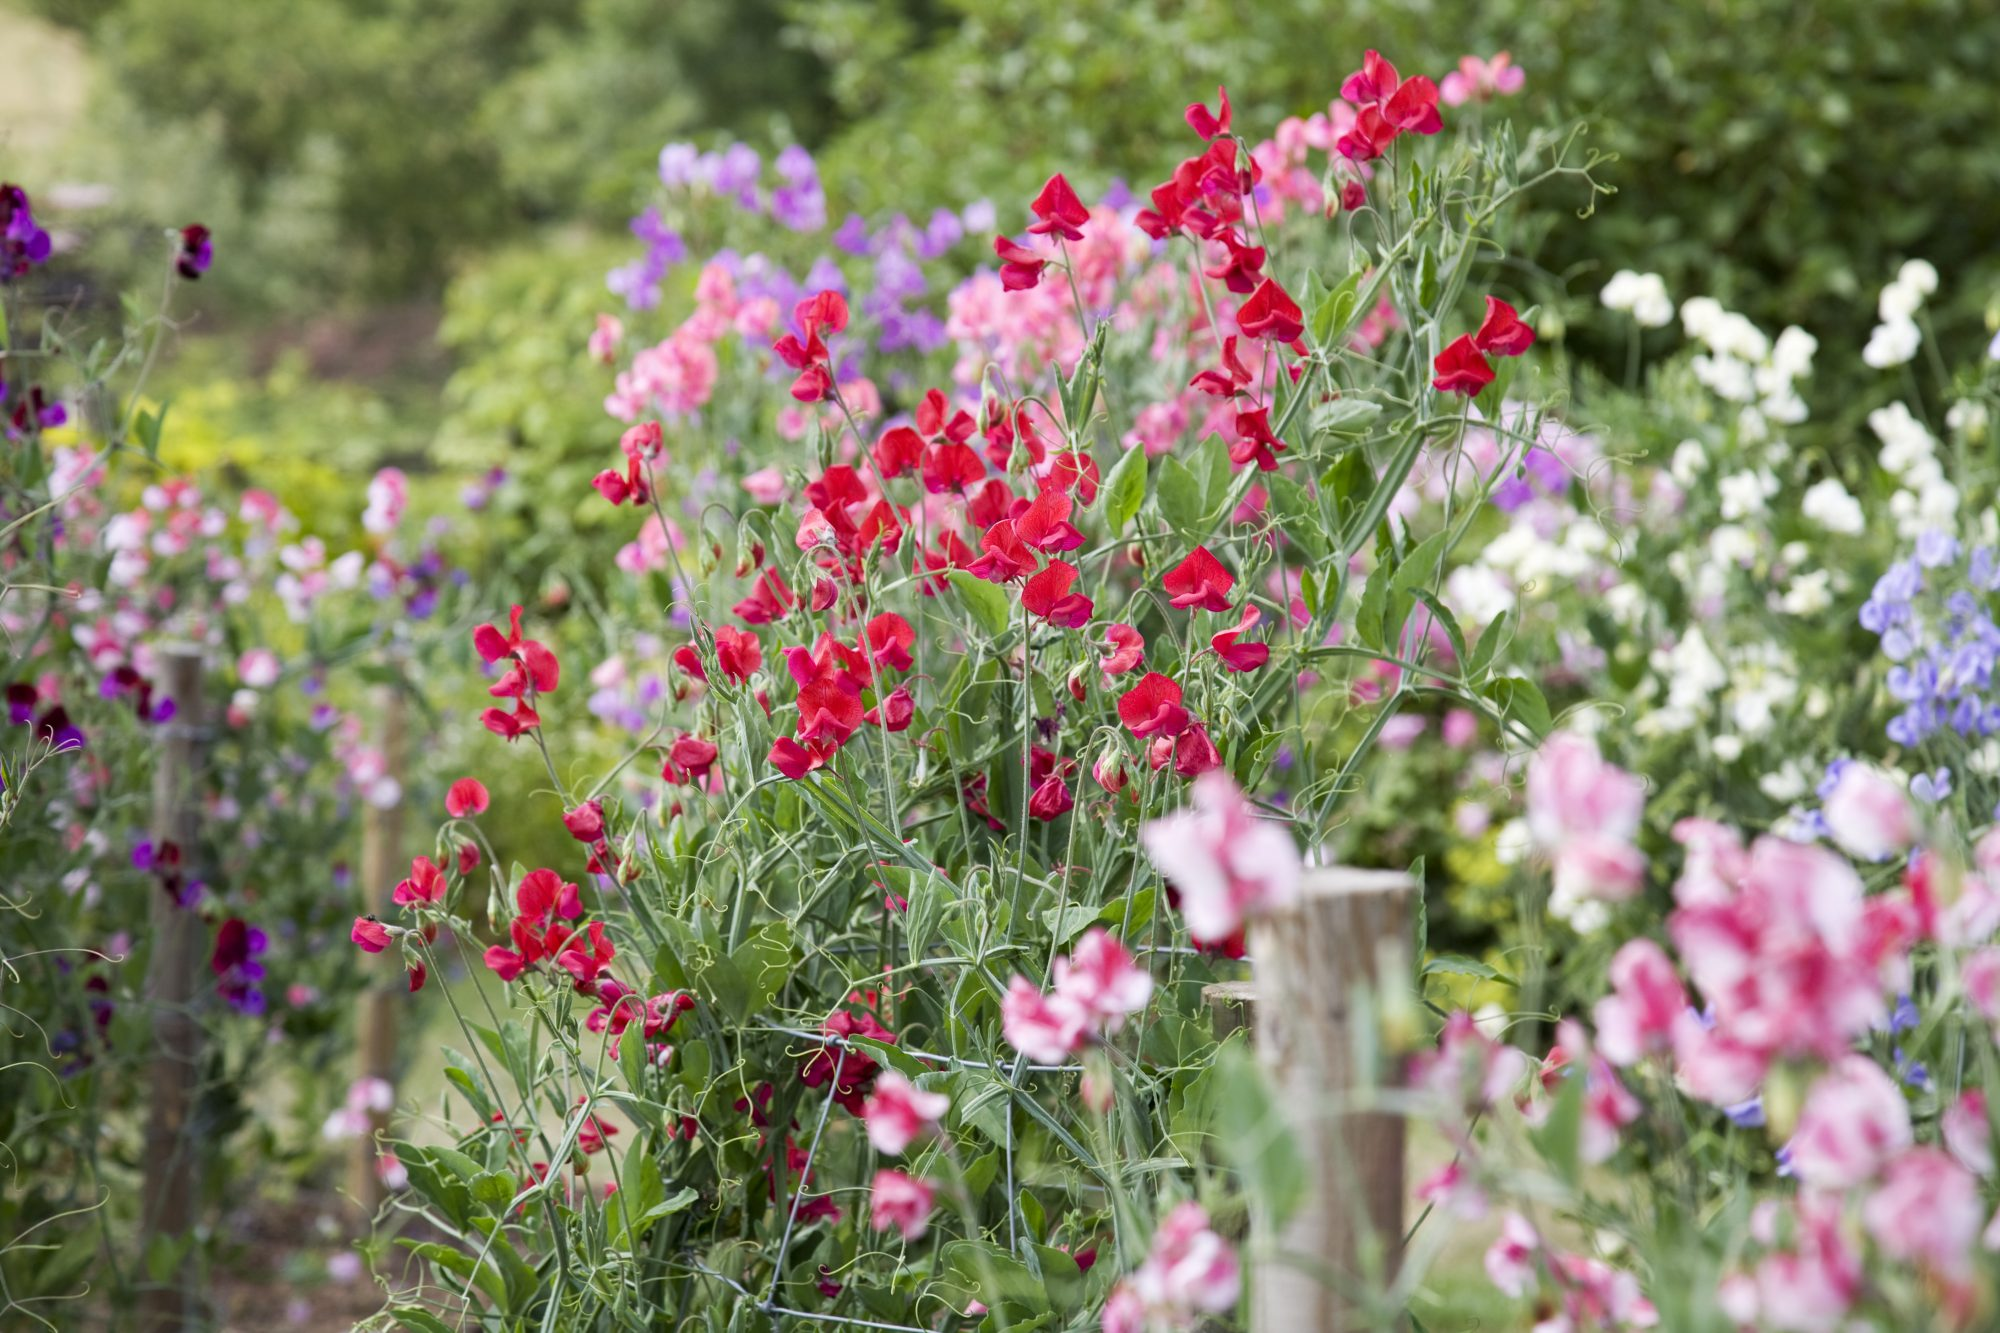 sweat pea flowers in garden